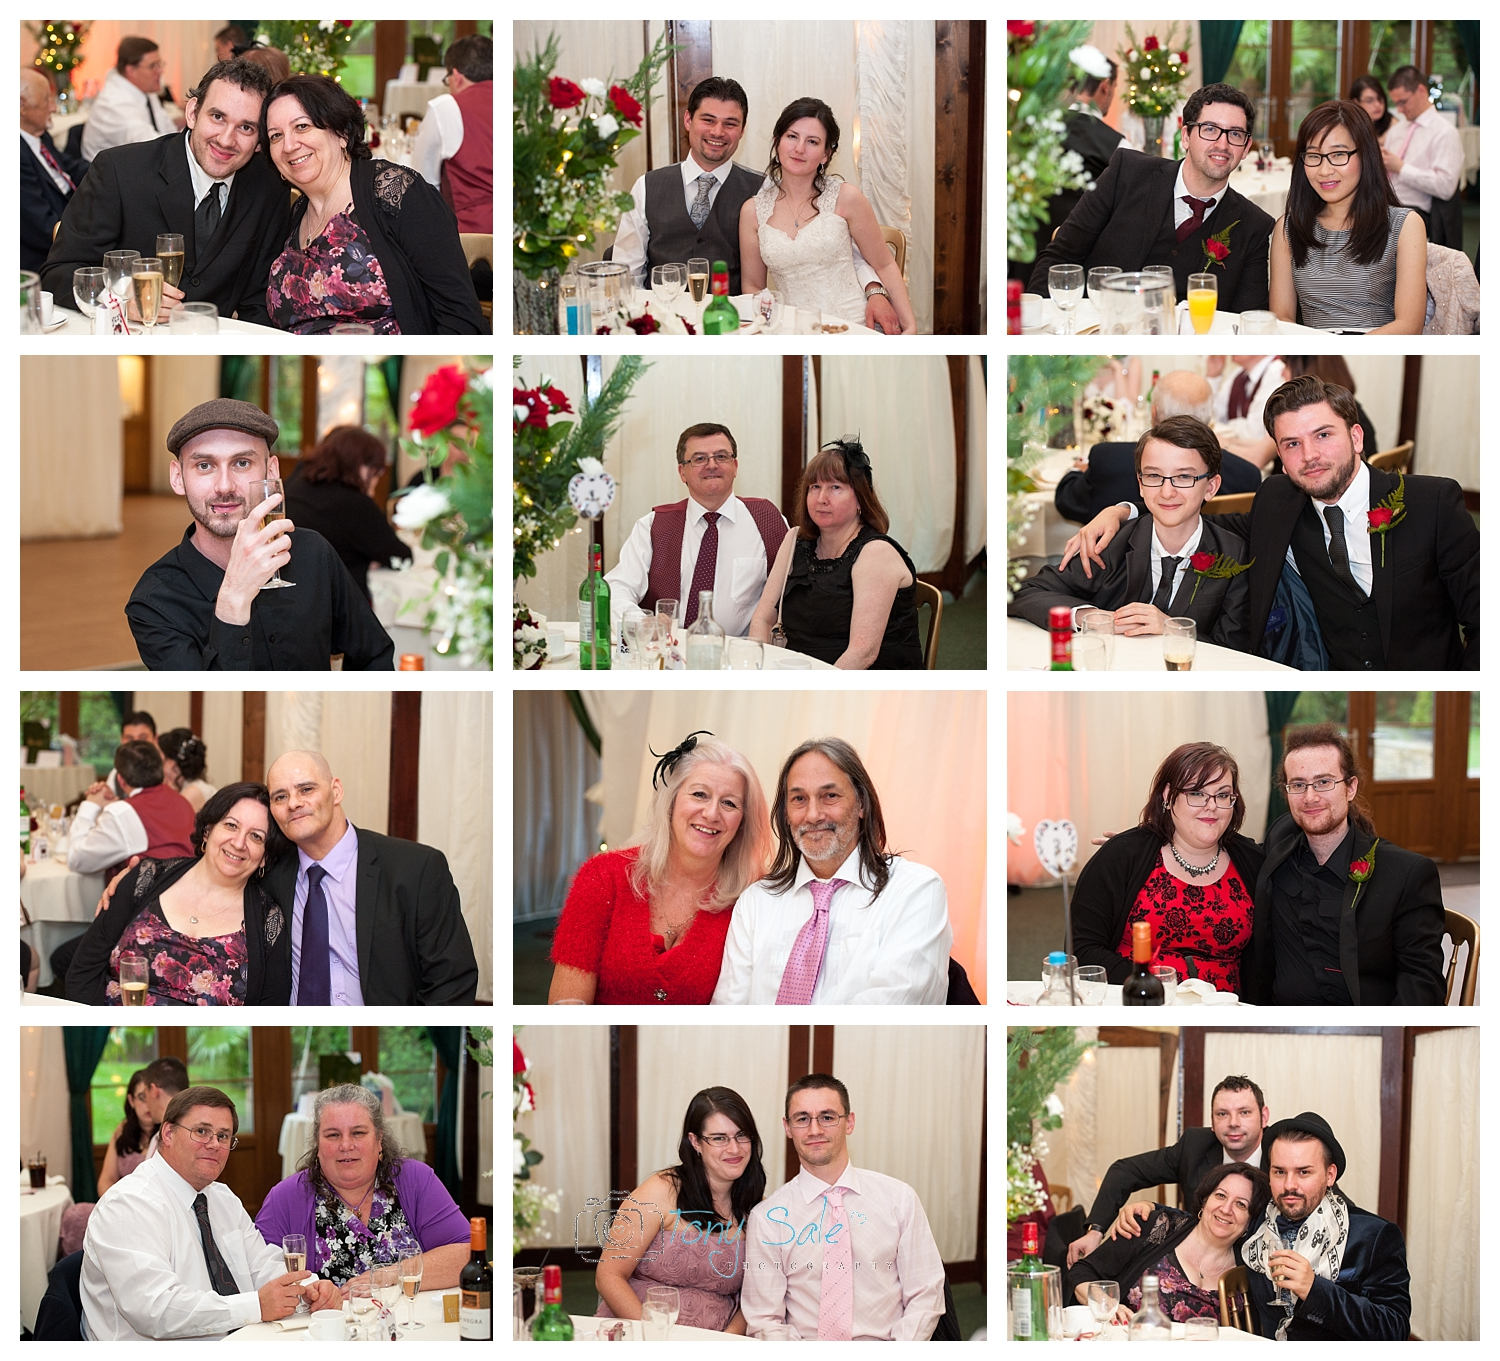 wedding-photography-newland-hall-chelmsford_028